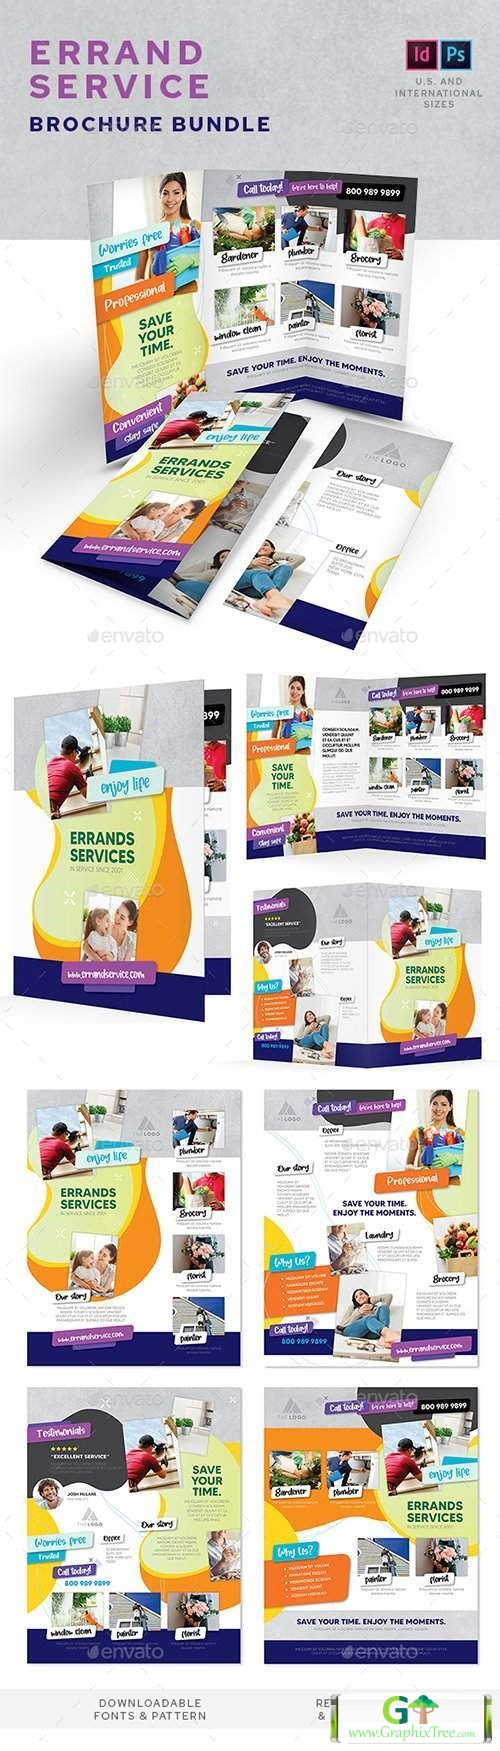 Errand Service Print Bundle [Powerpoint] [Indesign & Powerpoints]